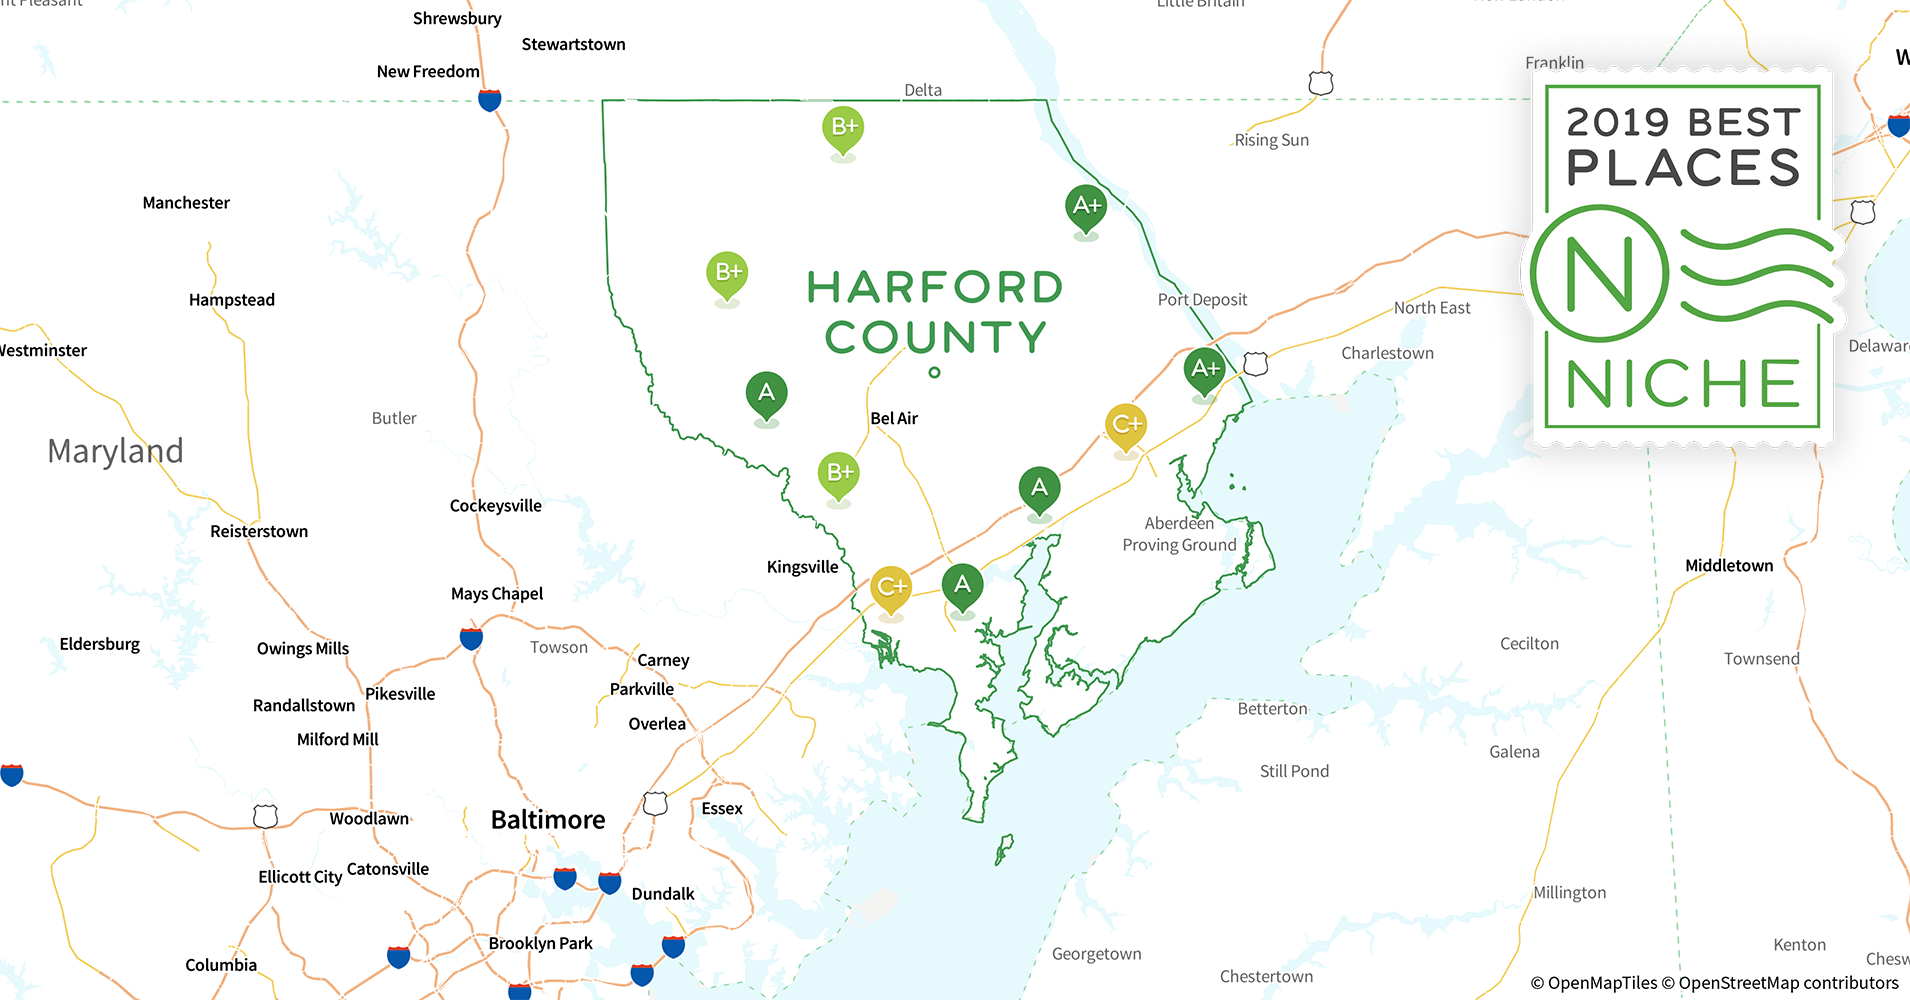 2019 Safe Places to Live in Harford County, MD - Niche Map Of Harford County Md on